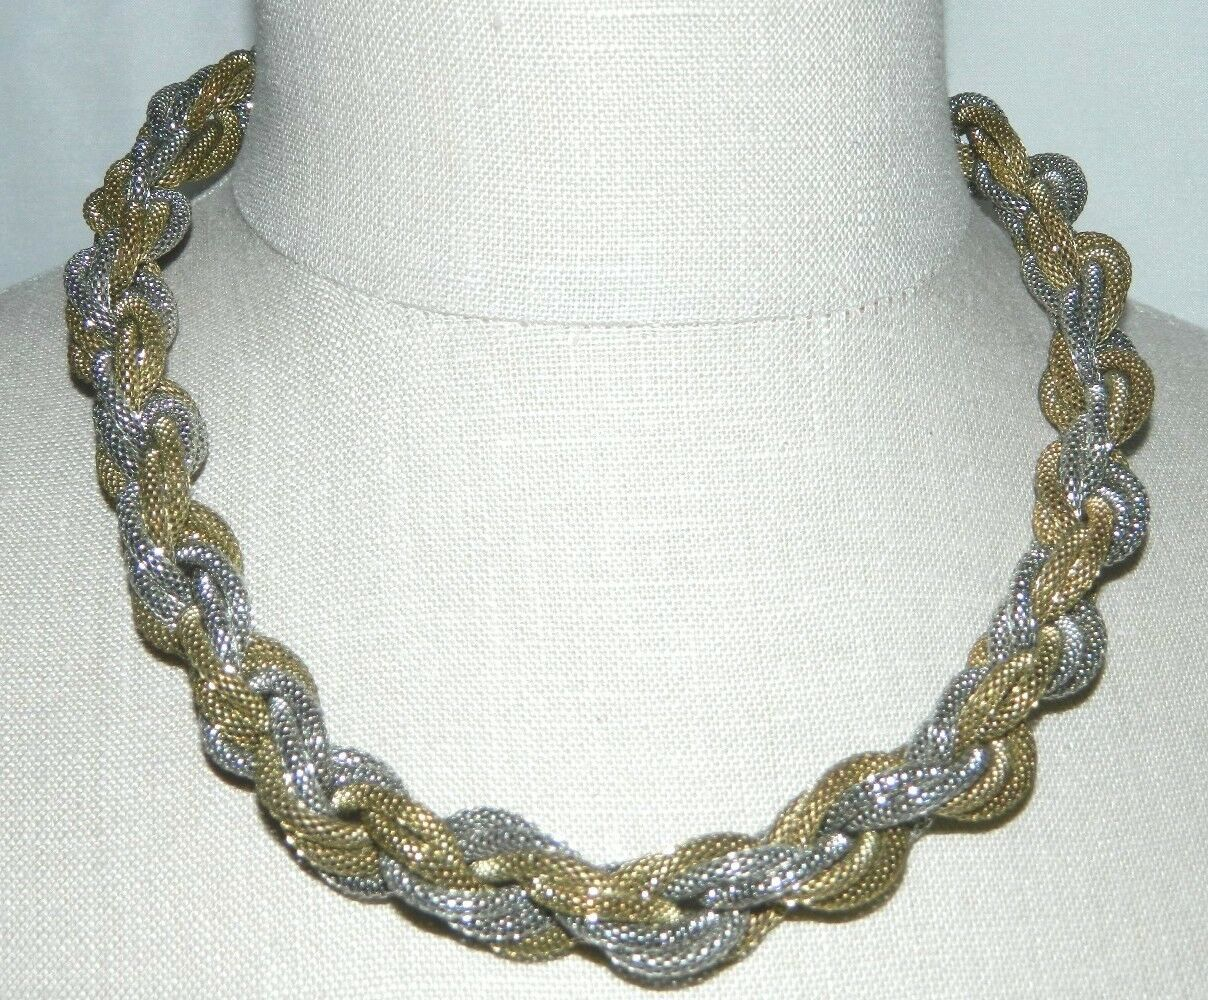 Primary image for VTG VINCERO Signed Dual Tone Mesh Multi-Chain Choker Necklace